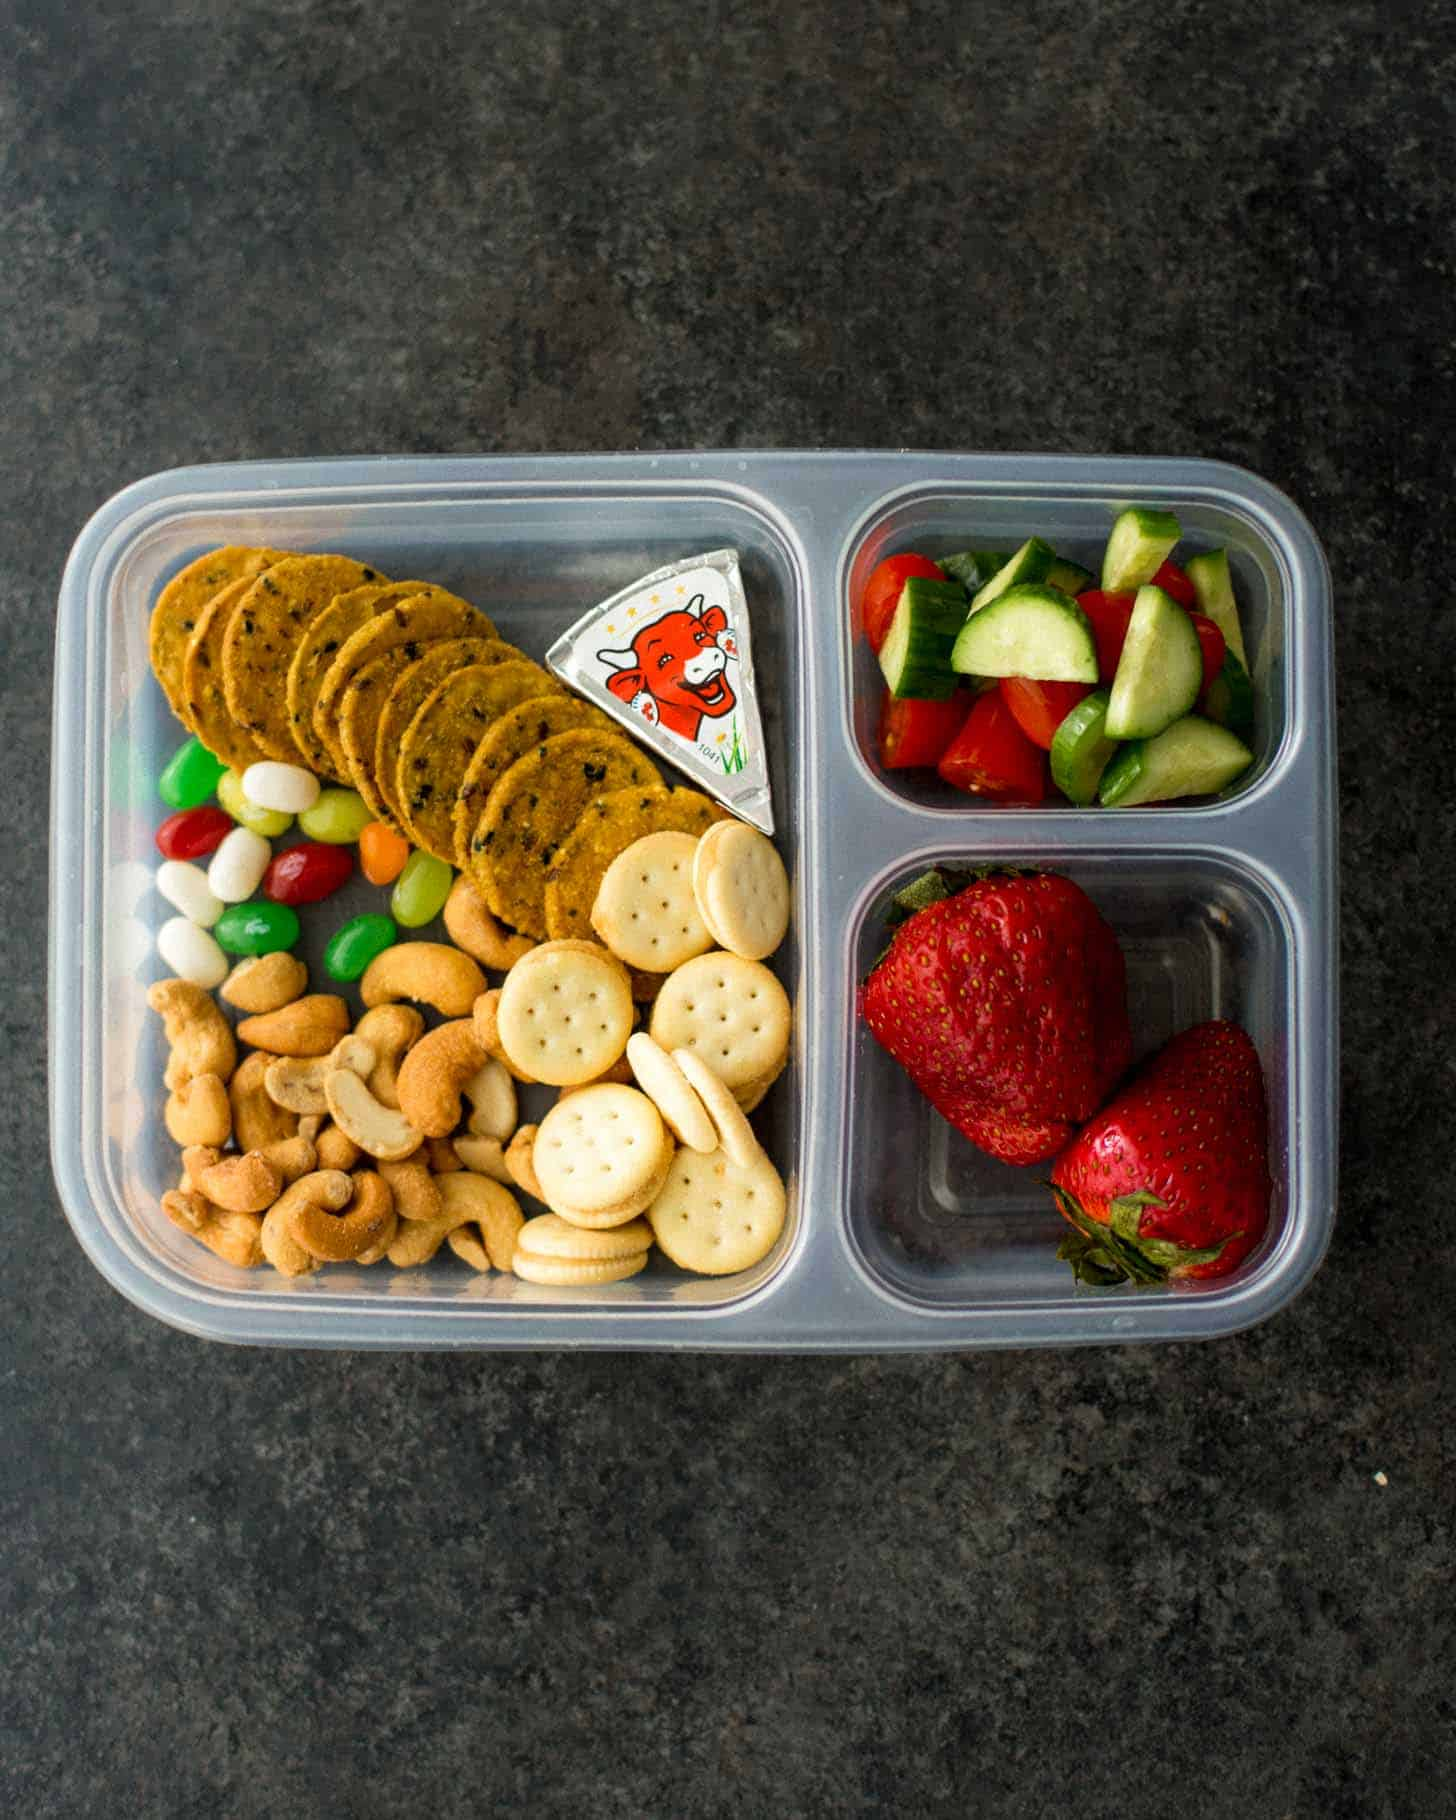 Ziploc lunch box packed with Bento lunch